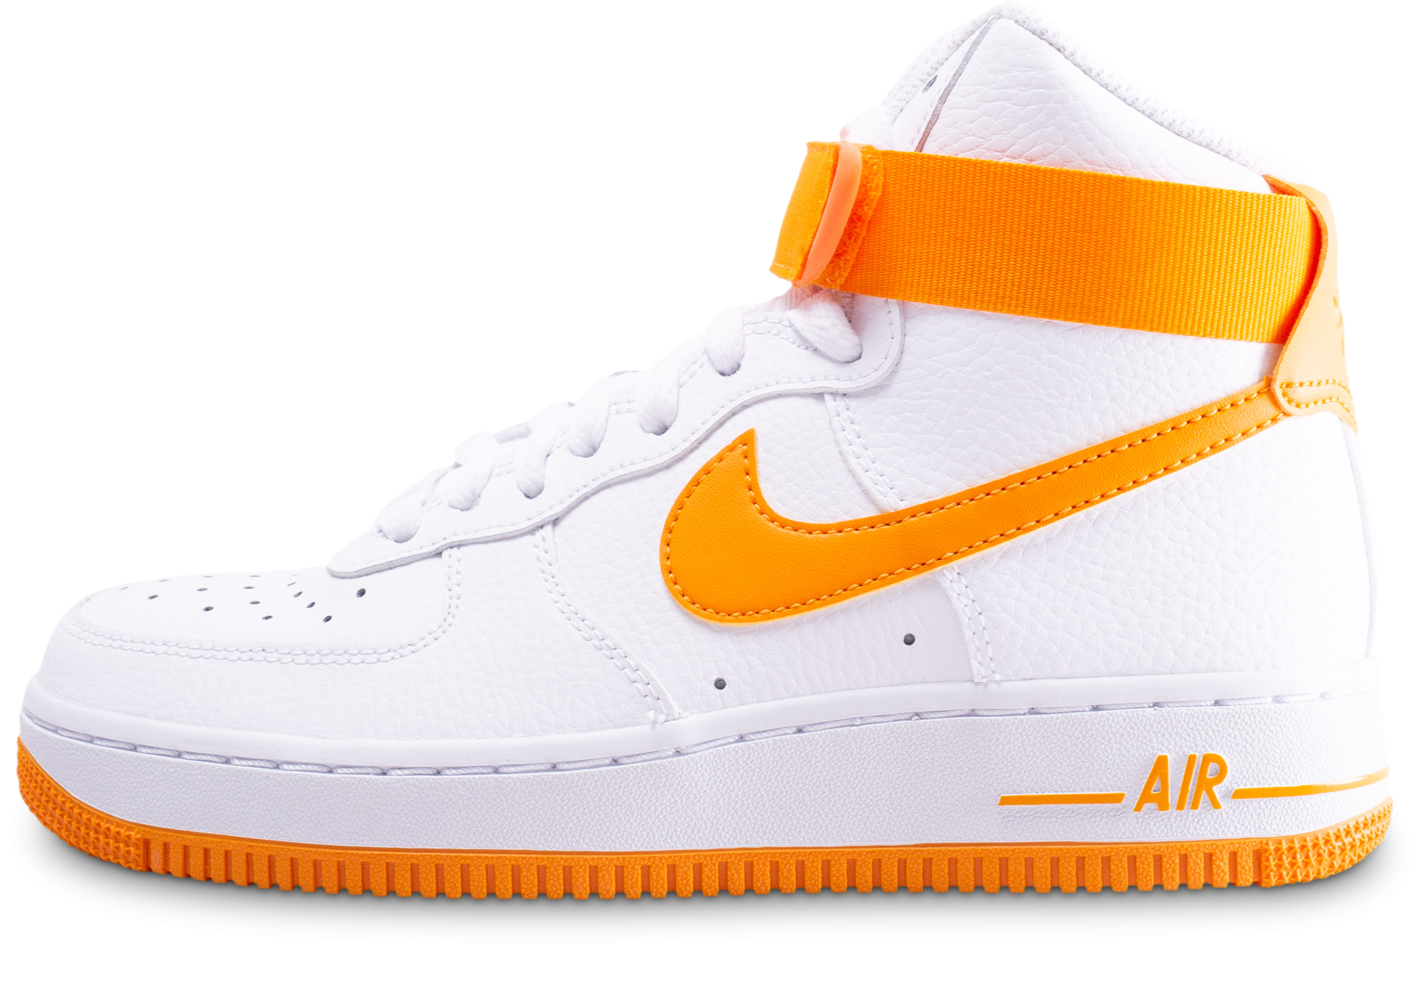 Nike Air Force 1 High blanc et orange femme